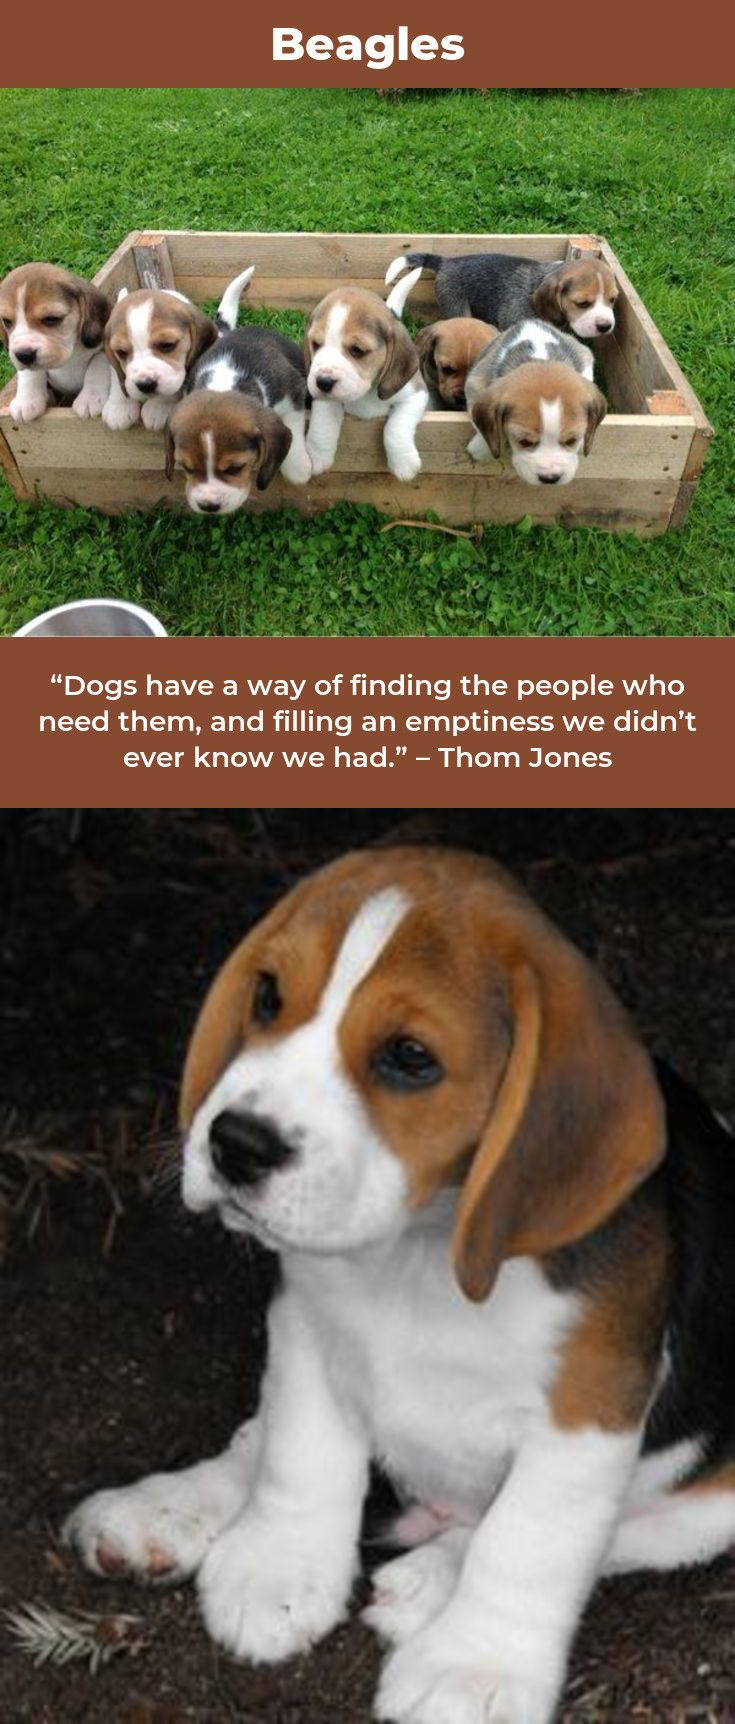 Beagles Forever Beagledaily Beagles Facts Beagle Facts Beagle